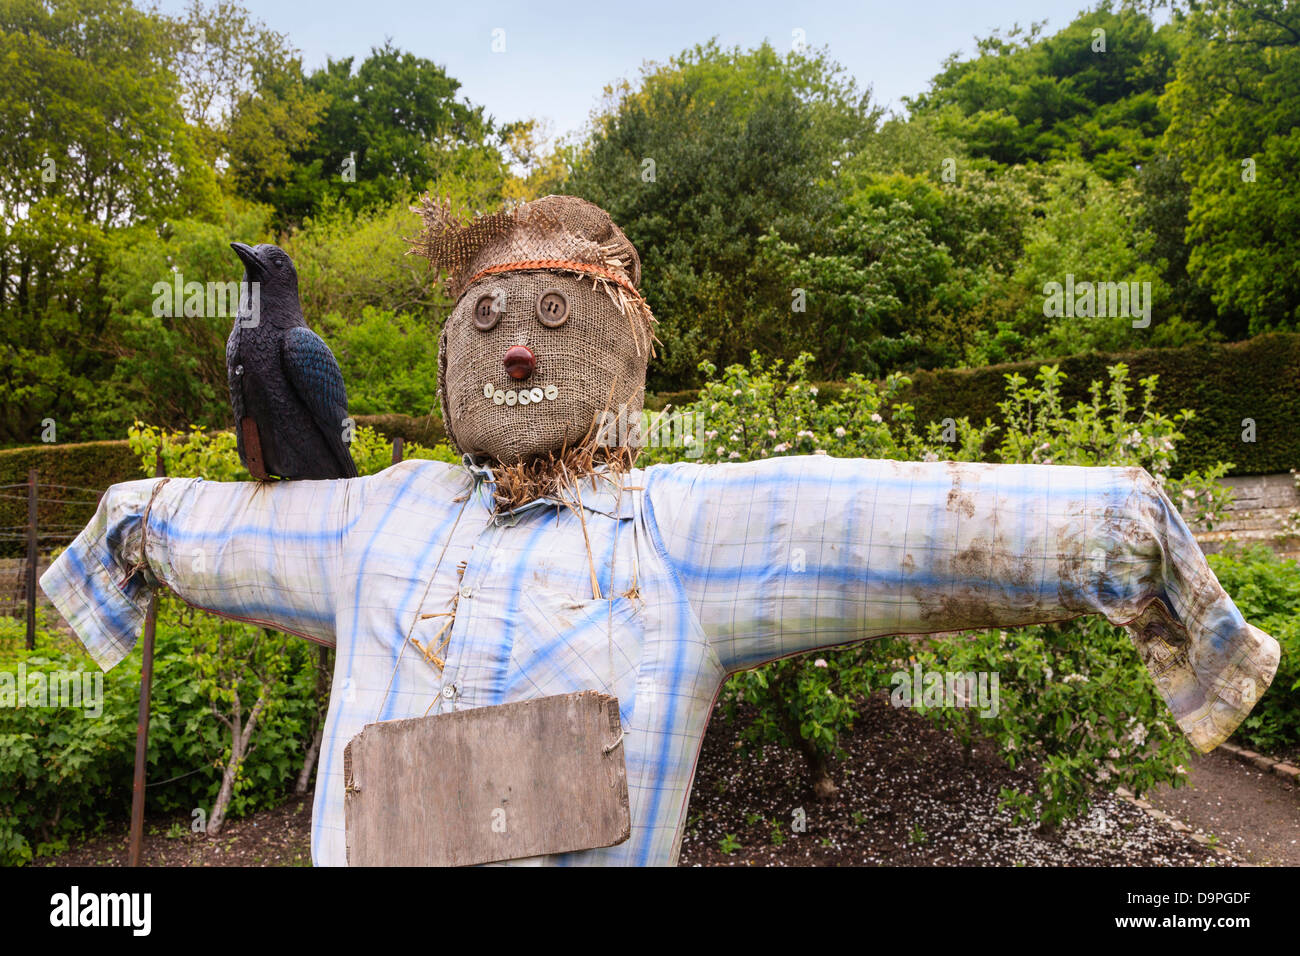 Scarecrow made from old clothing and stuffed with straw, Scotland, UK - Stock Image